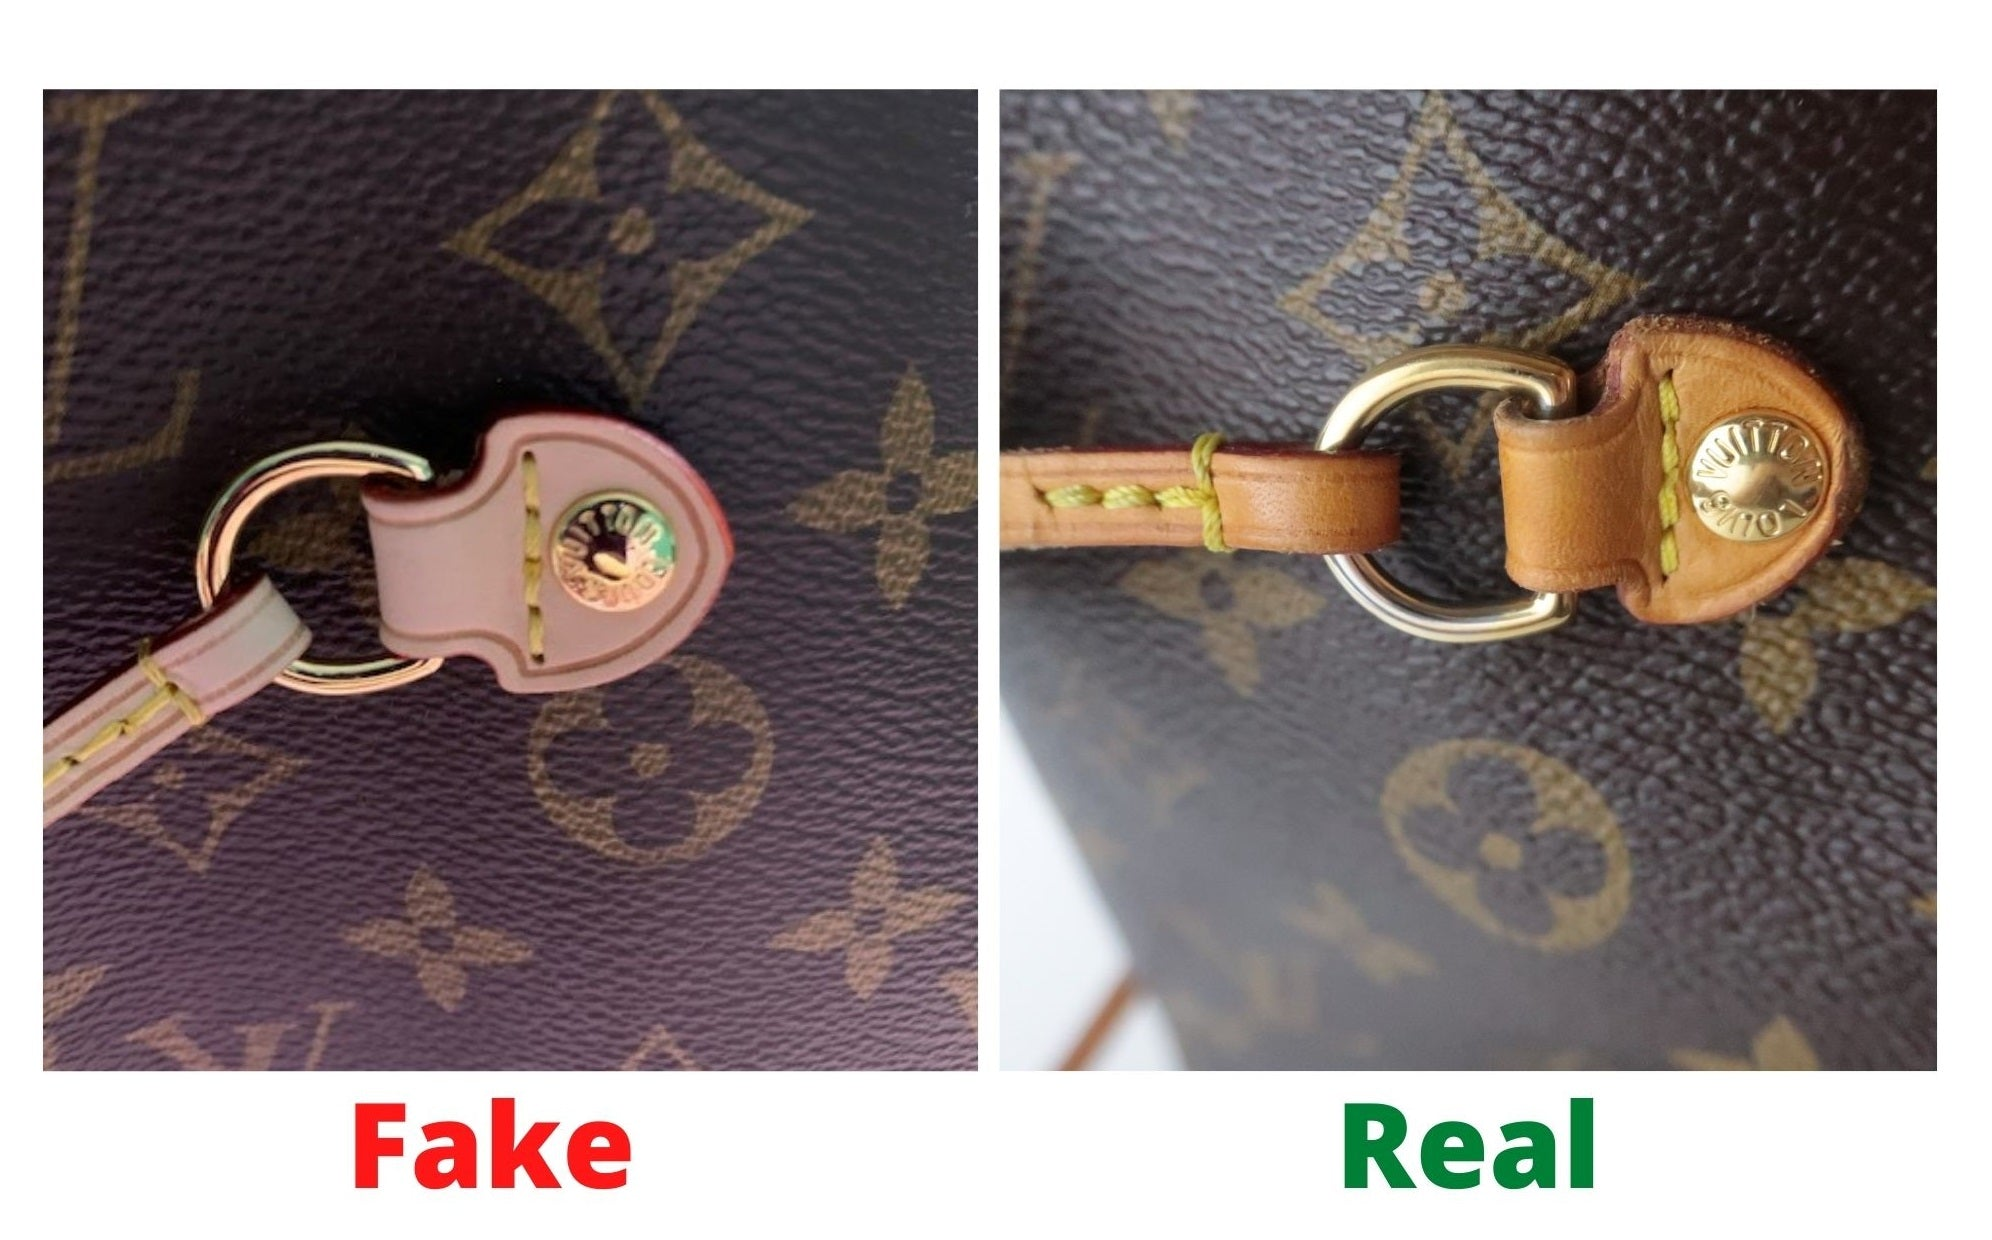 Fake Louis Vuitton Neverfull vs Real: Important Details You Should Definitely Pay Attention To (With Photo Examples) Fake vs real Neverfull Monogram leather element